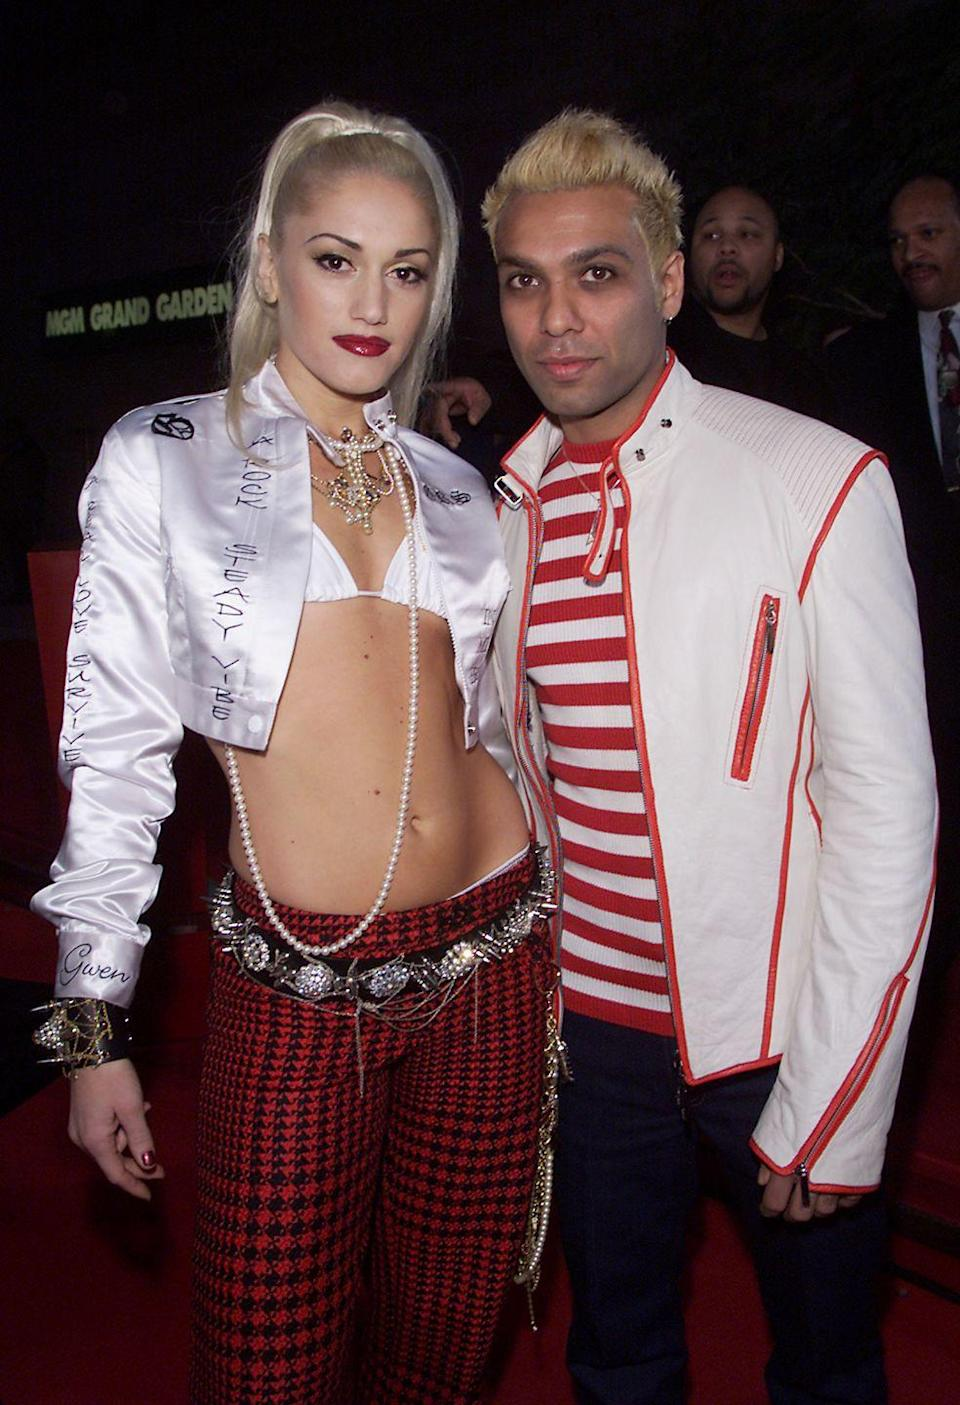 """<p>They say heartbreak drives brilliance and in Stefani's case, that's exactly what happened. After splitting from her No Doubt bandmate, Tony Kanal, in 1994, Stefani penned """"Don't Speak"""" and the band's popularity skyrocketed. Stefani and Kanal remained in the band together until it went on hiatus. </p>"""